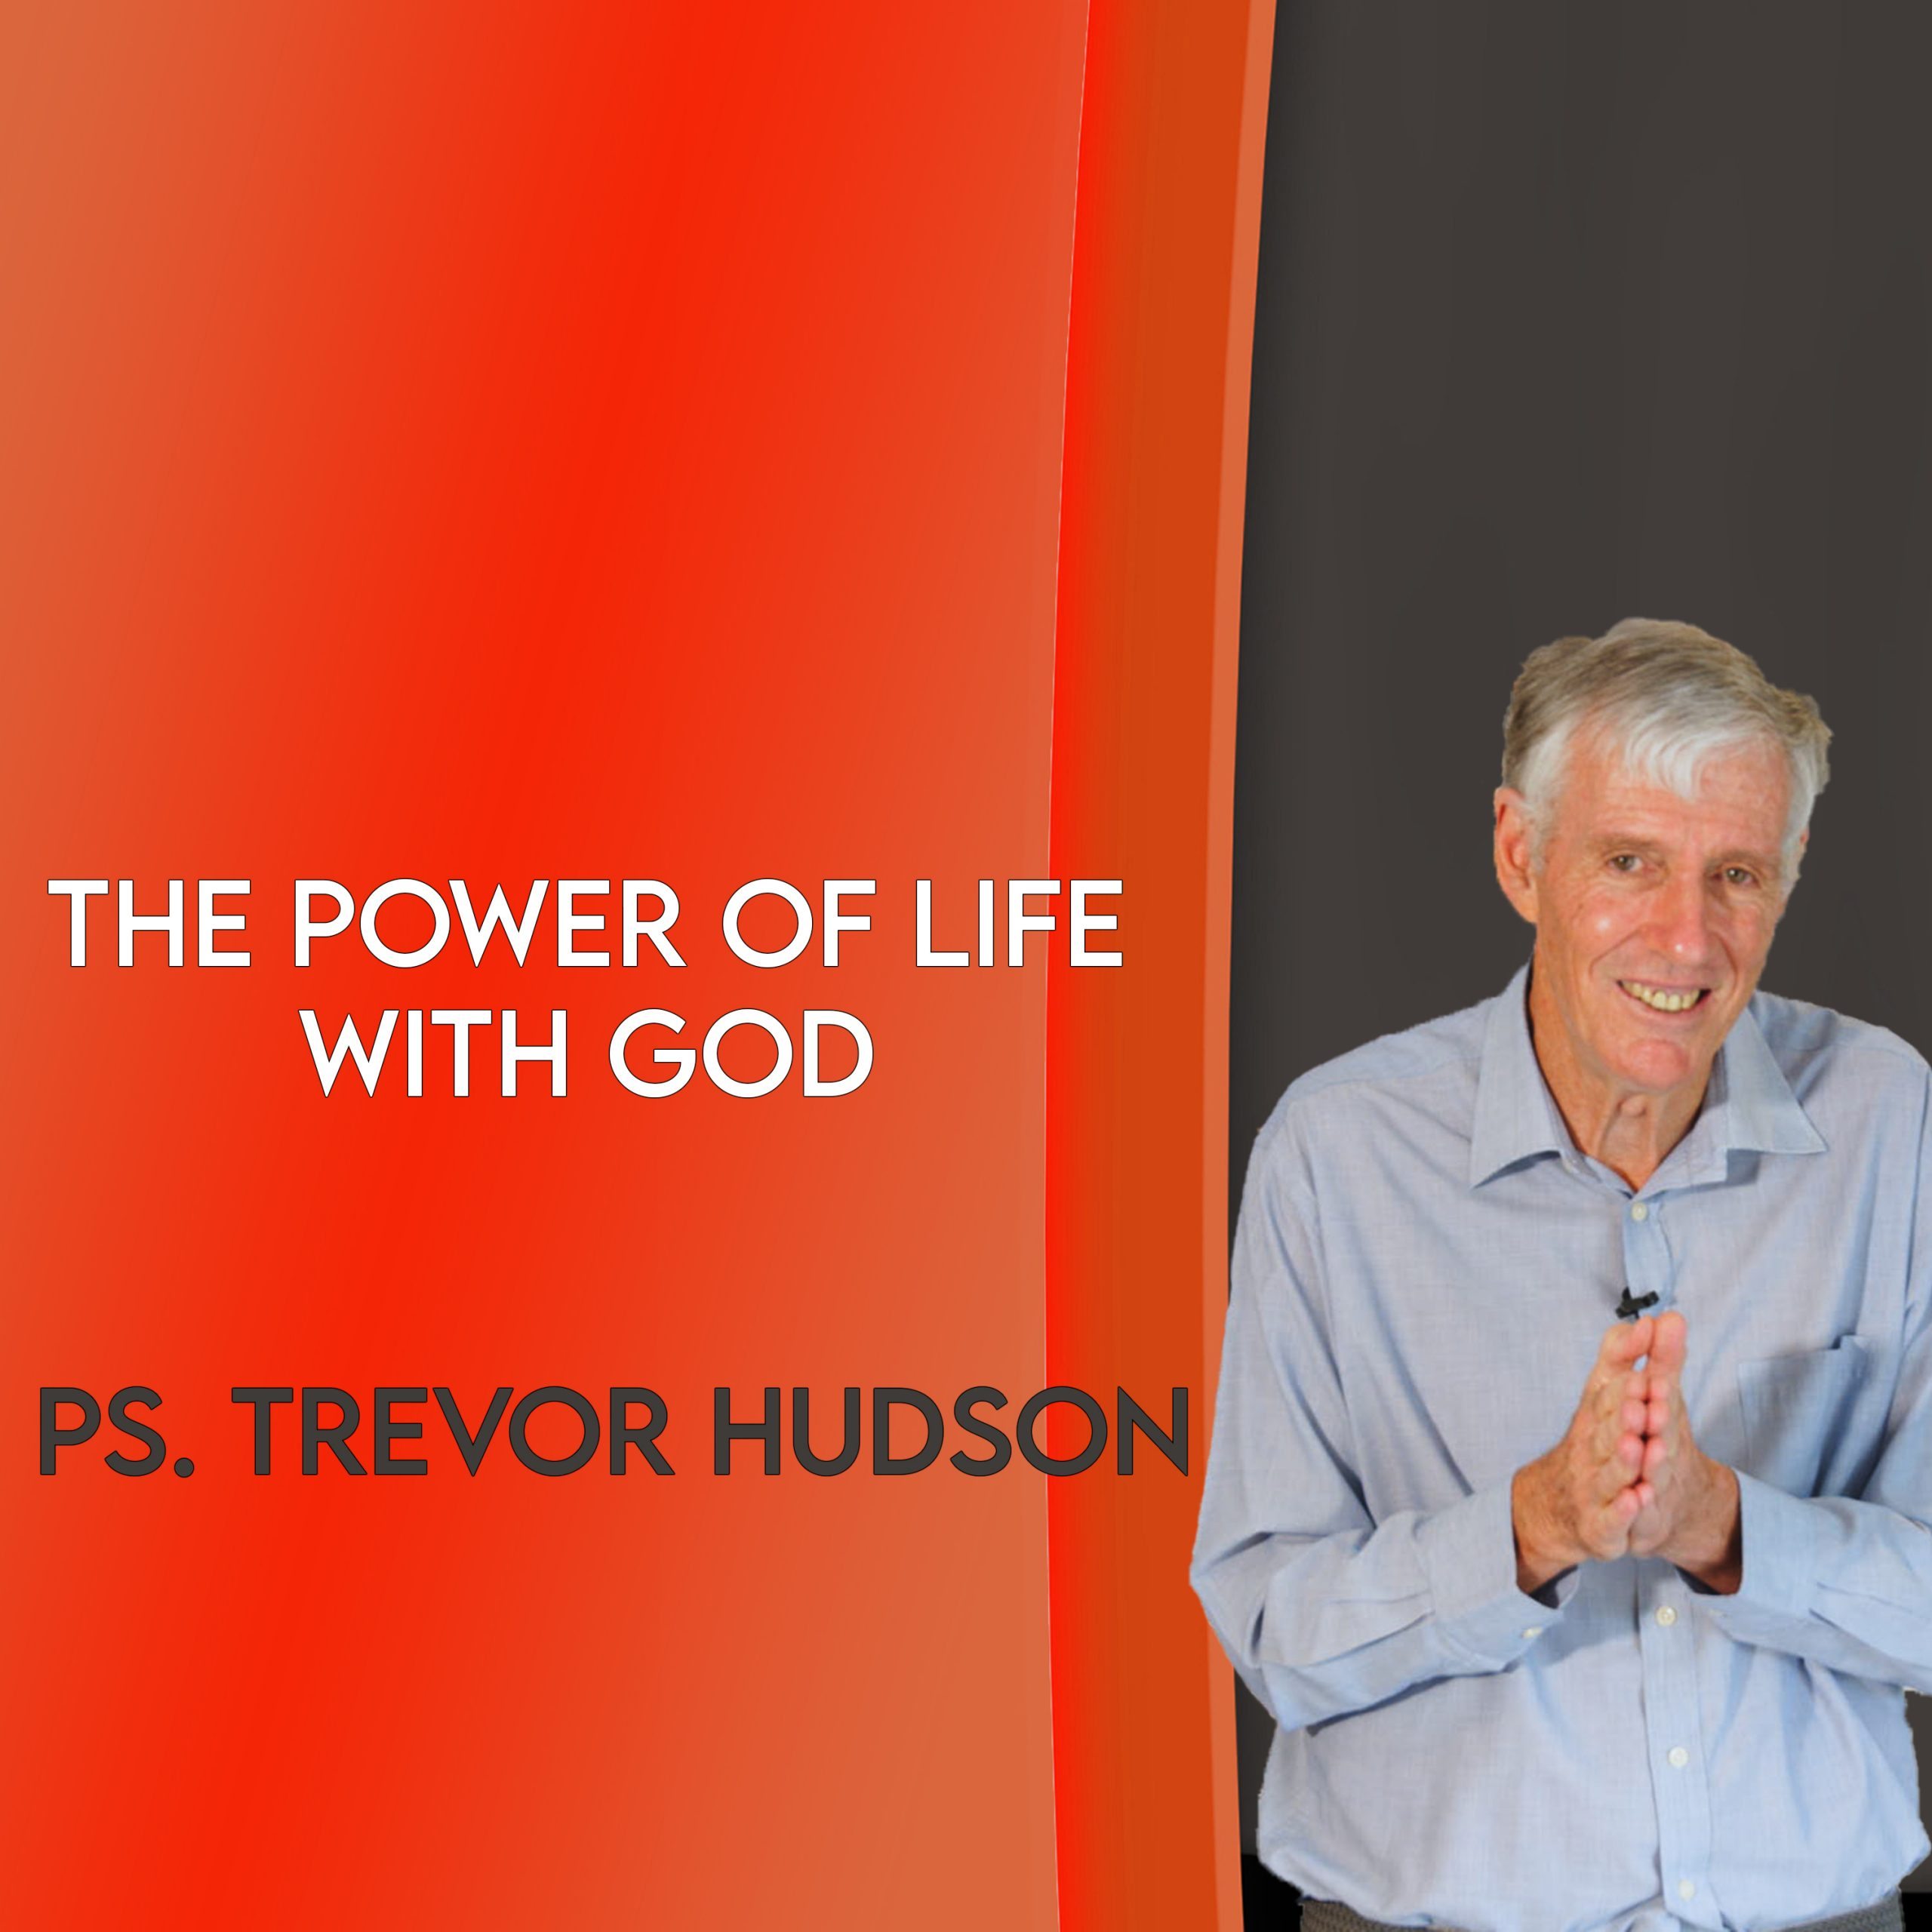 The Power of Life With God